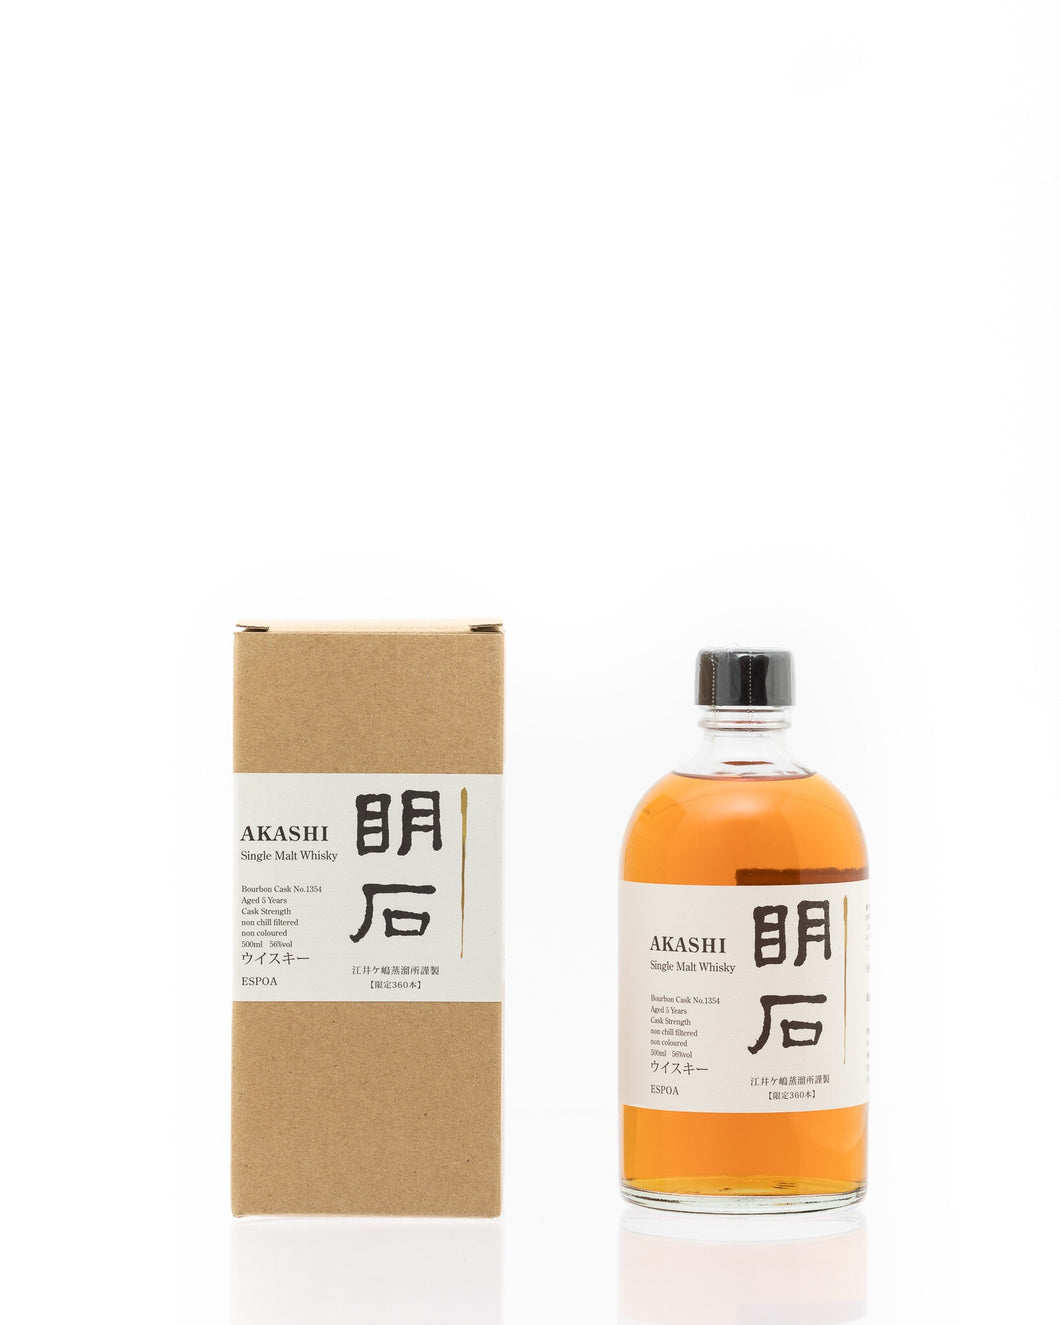 Akashi 5 year Old Bourbon Single Cask 1354